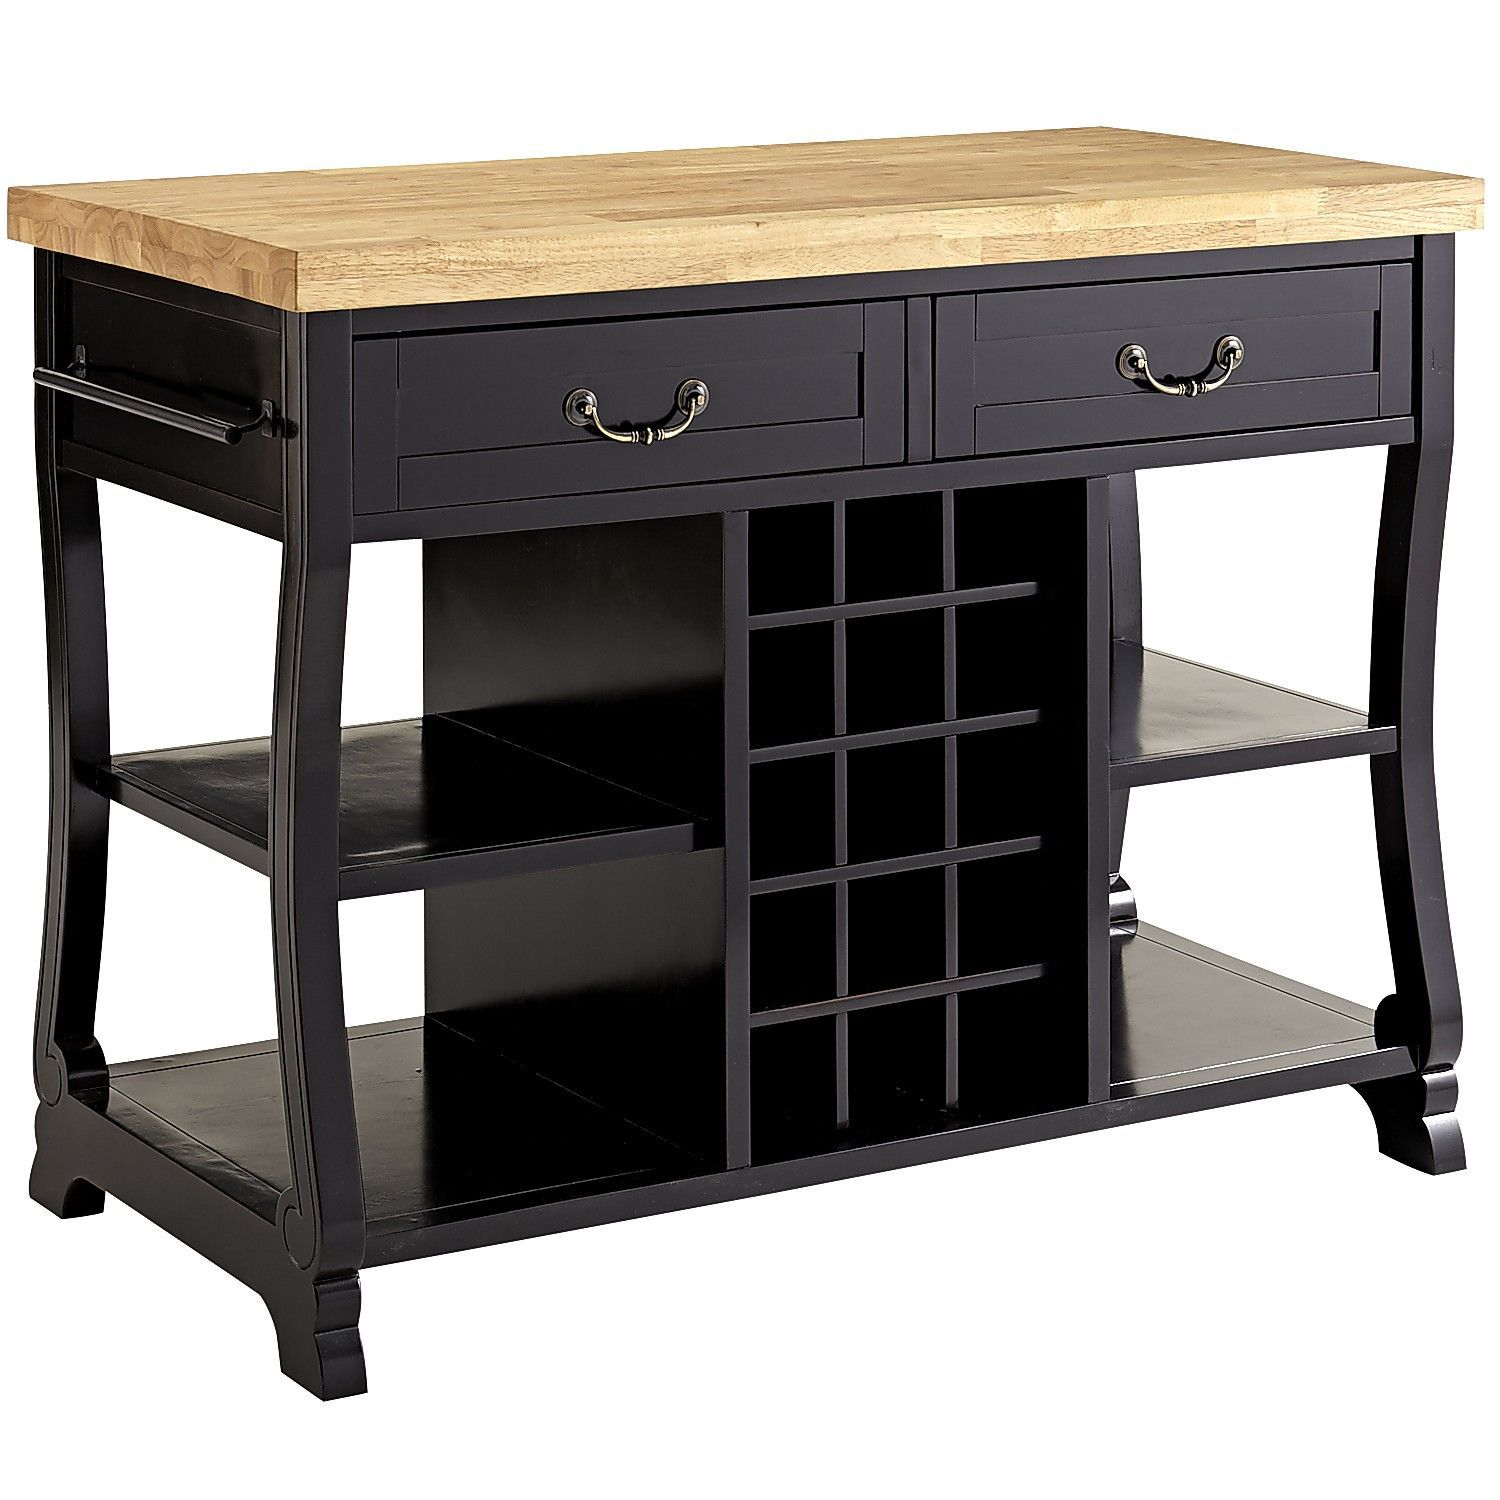 Pier One Kitchen Table Marchella Kitchen Island Rubbed Black Pier 1 Imports